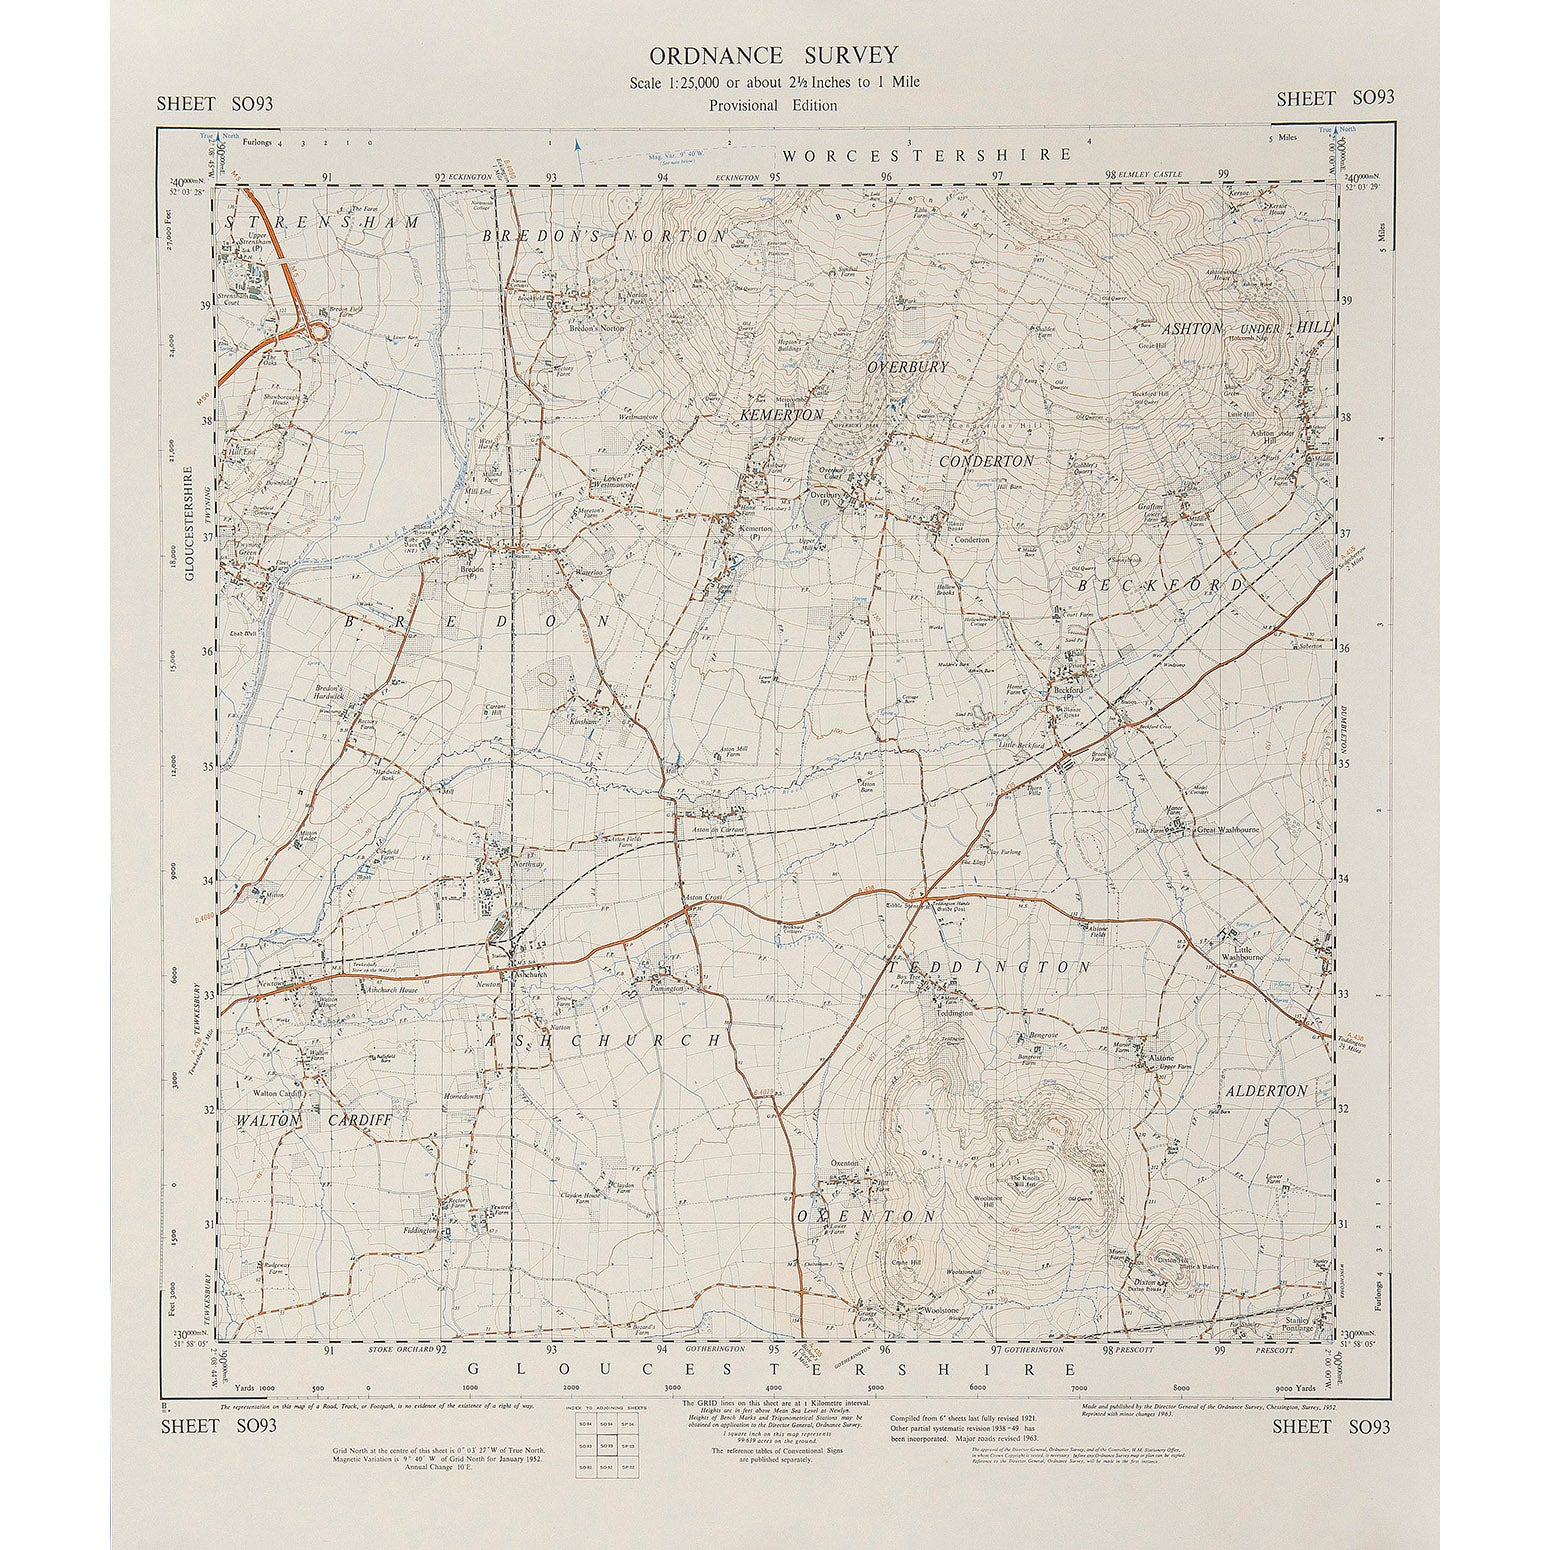 Worcestershire Ordnance Survey map 1:25,000 scale